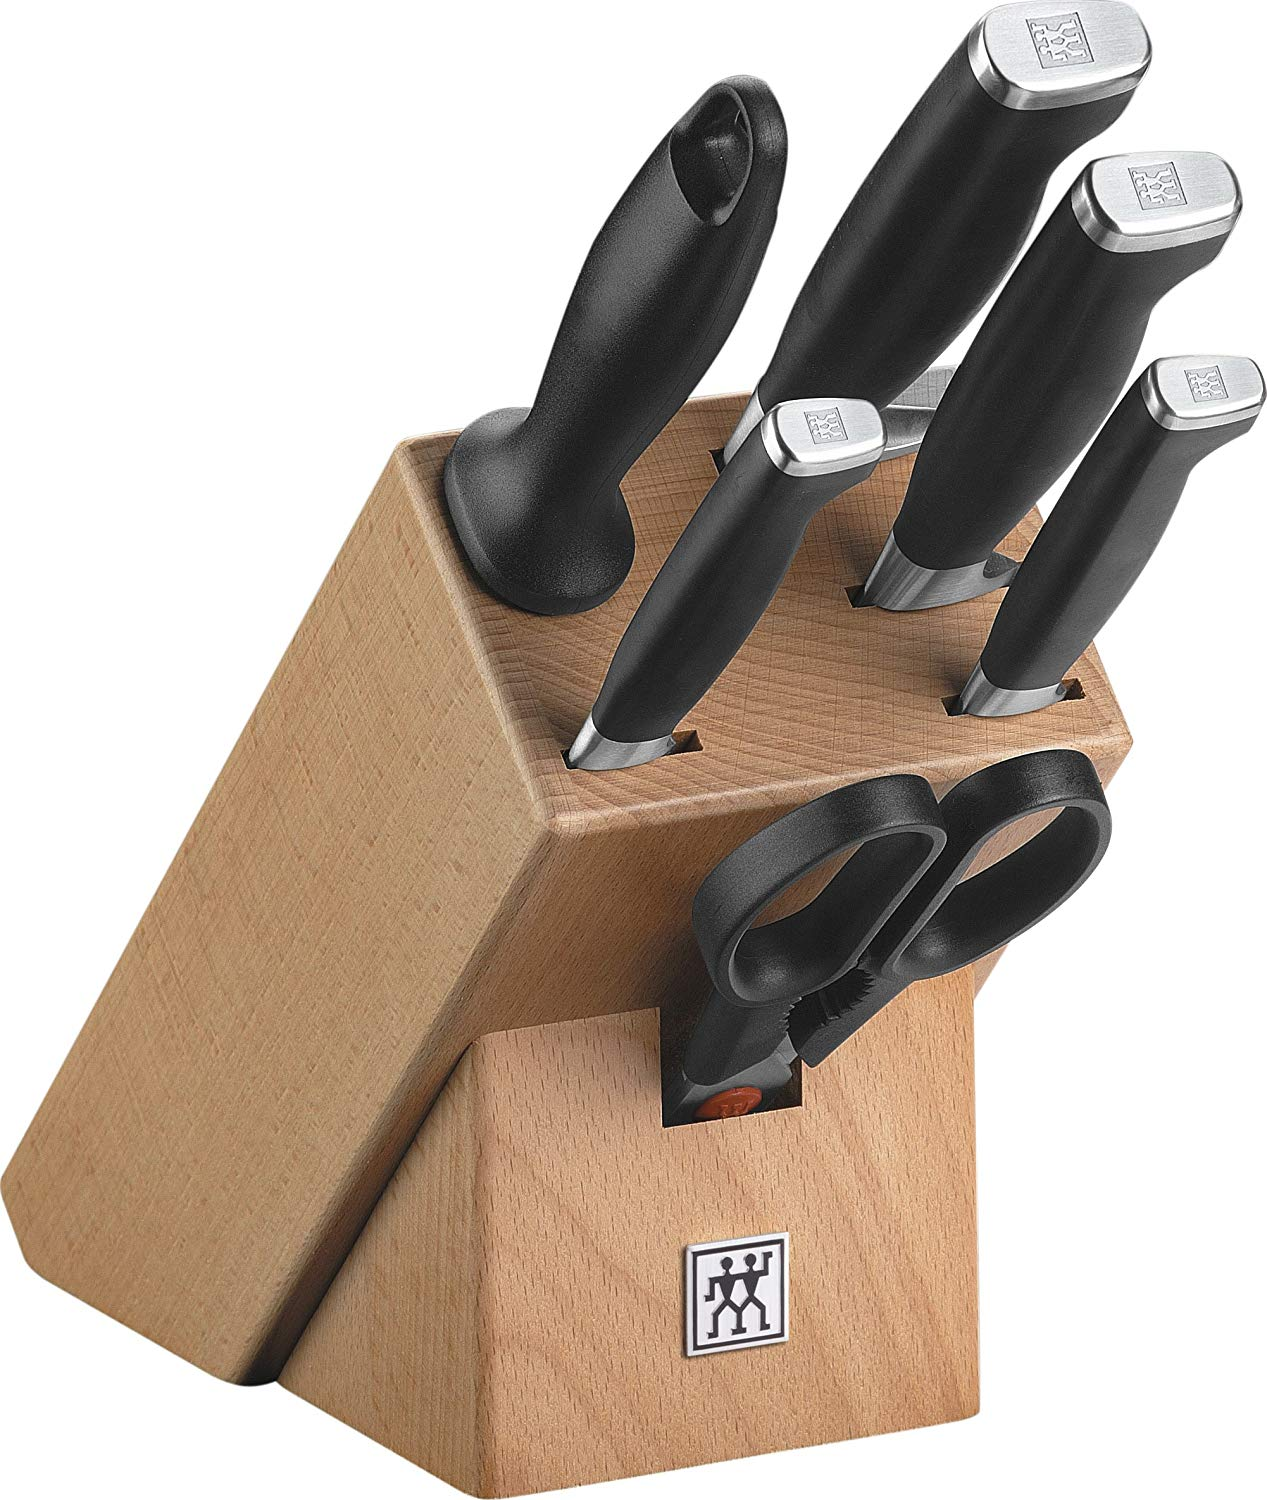 Zwilling Messerblock amazon